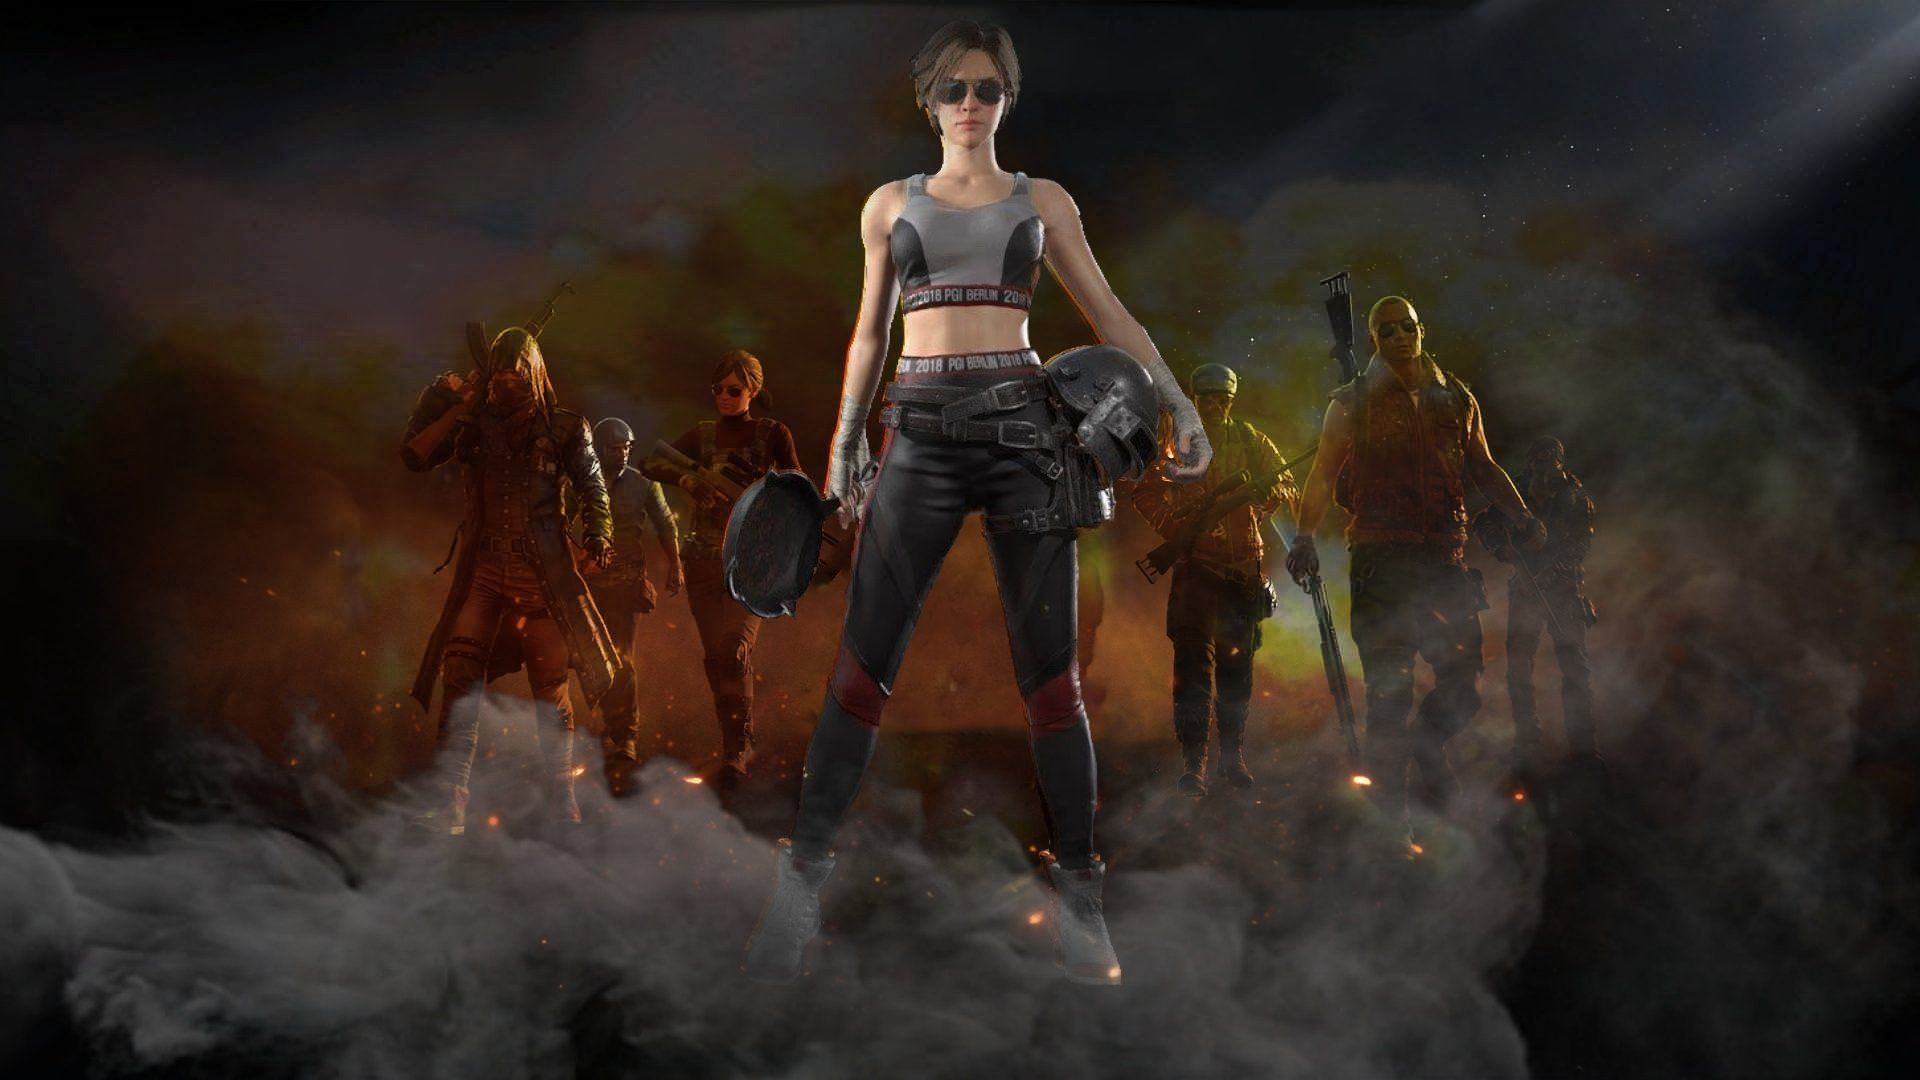 Pubg Wallpaper 4k Download Online Free Hd For Android And I Phone